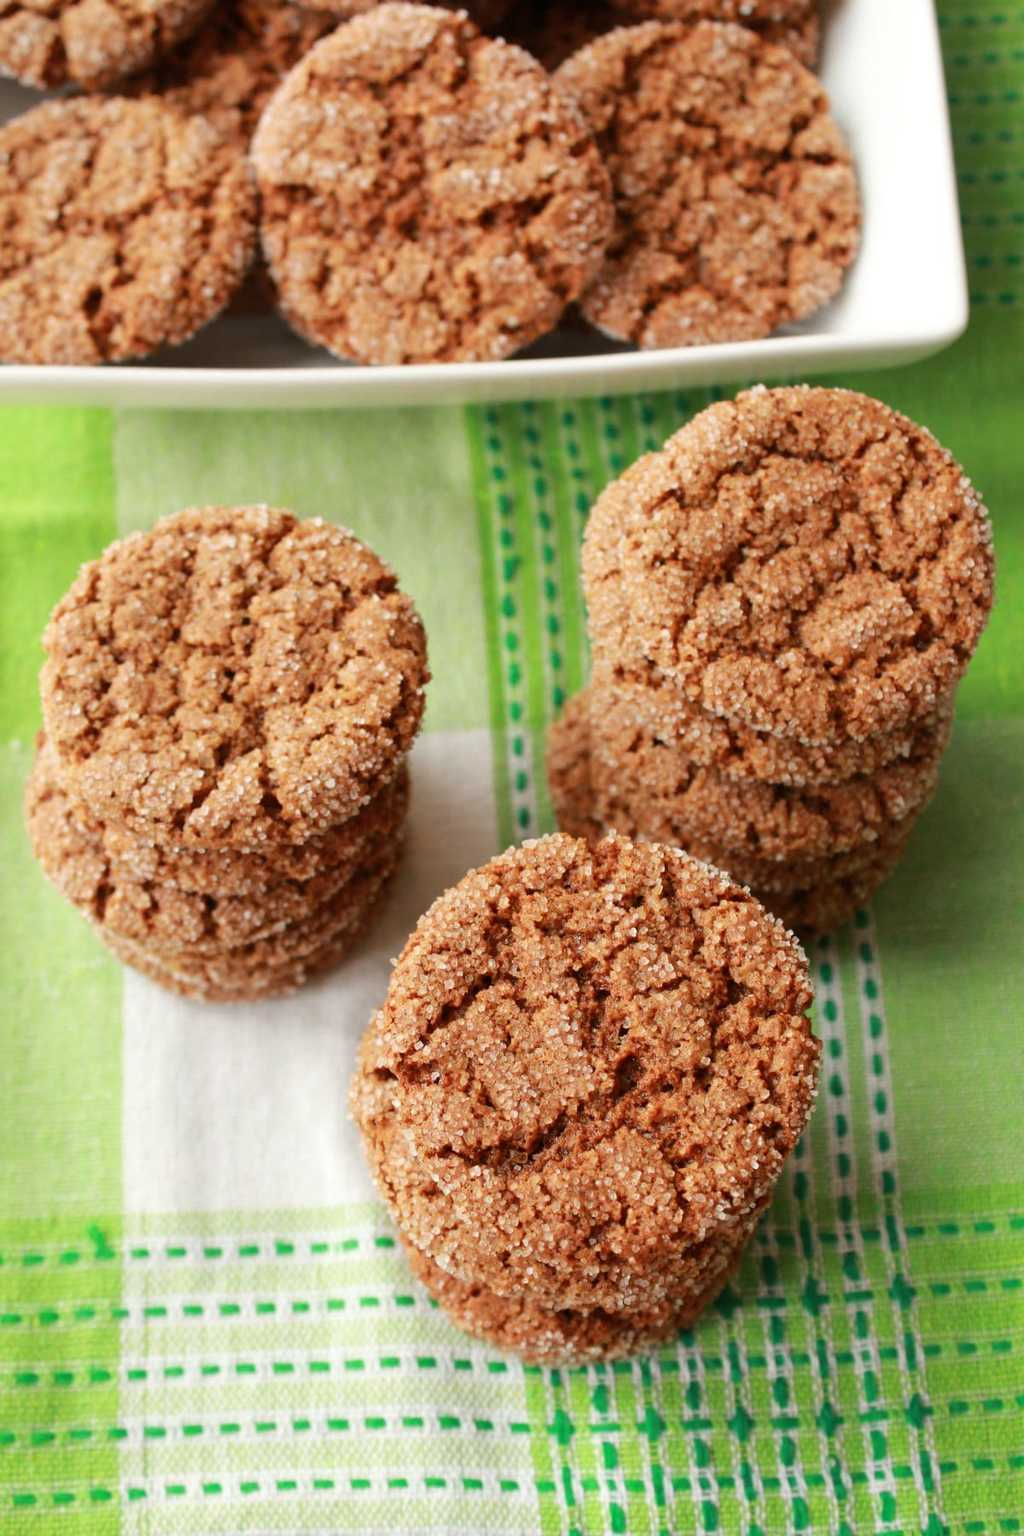 Vegan Gingersnap Cookies. Super crunchy and perfect for a snack. #vegan #lovingitvegan #cookies #gingersnap #dessert